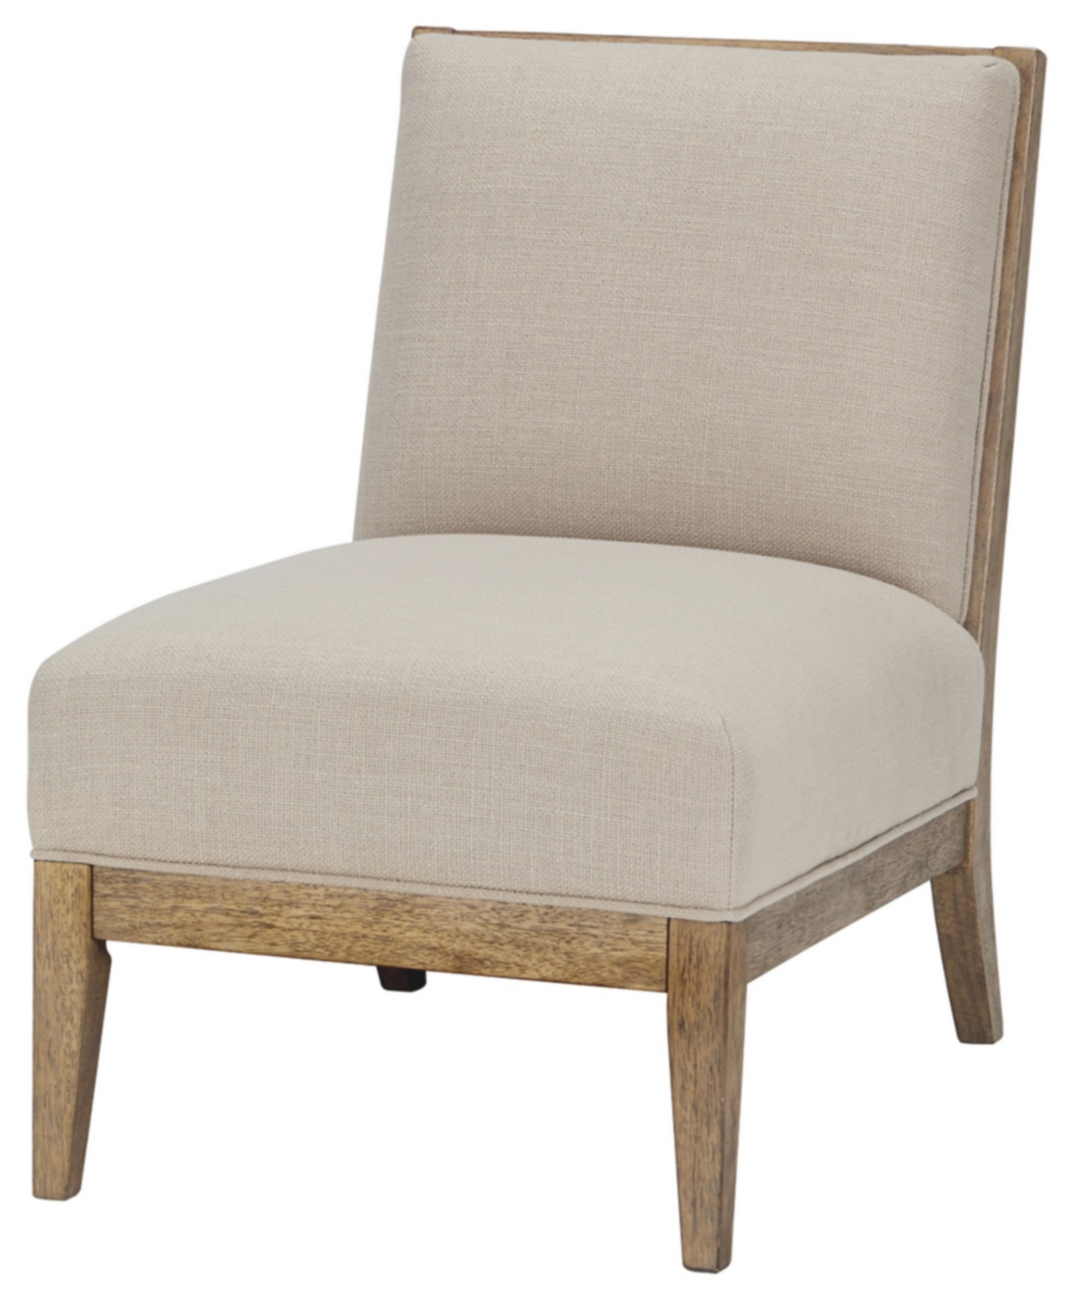 Signature | Furniture | Accent | Design | Chair